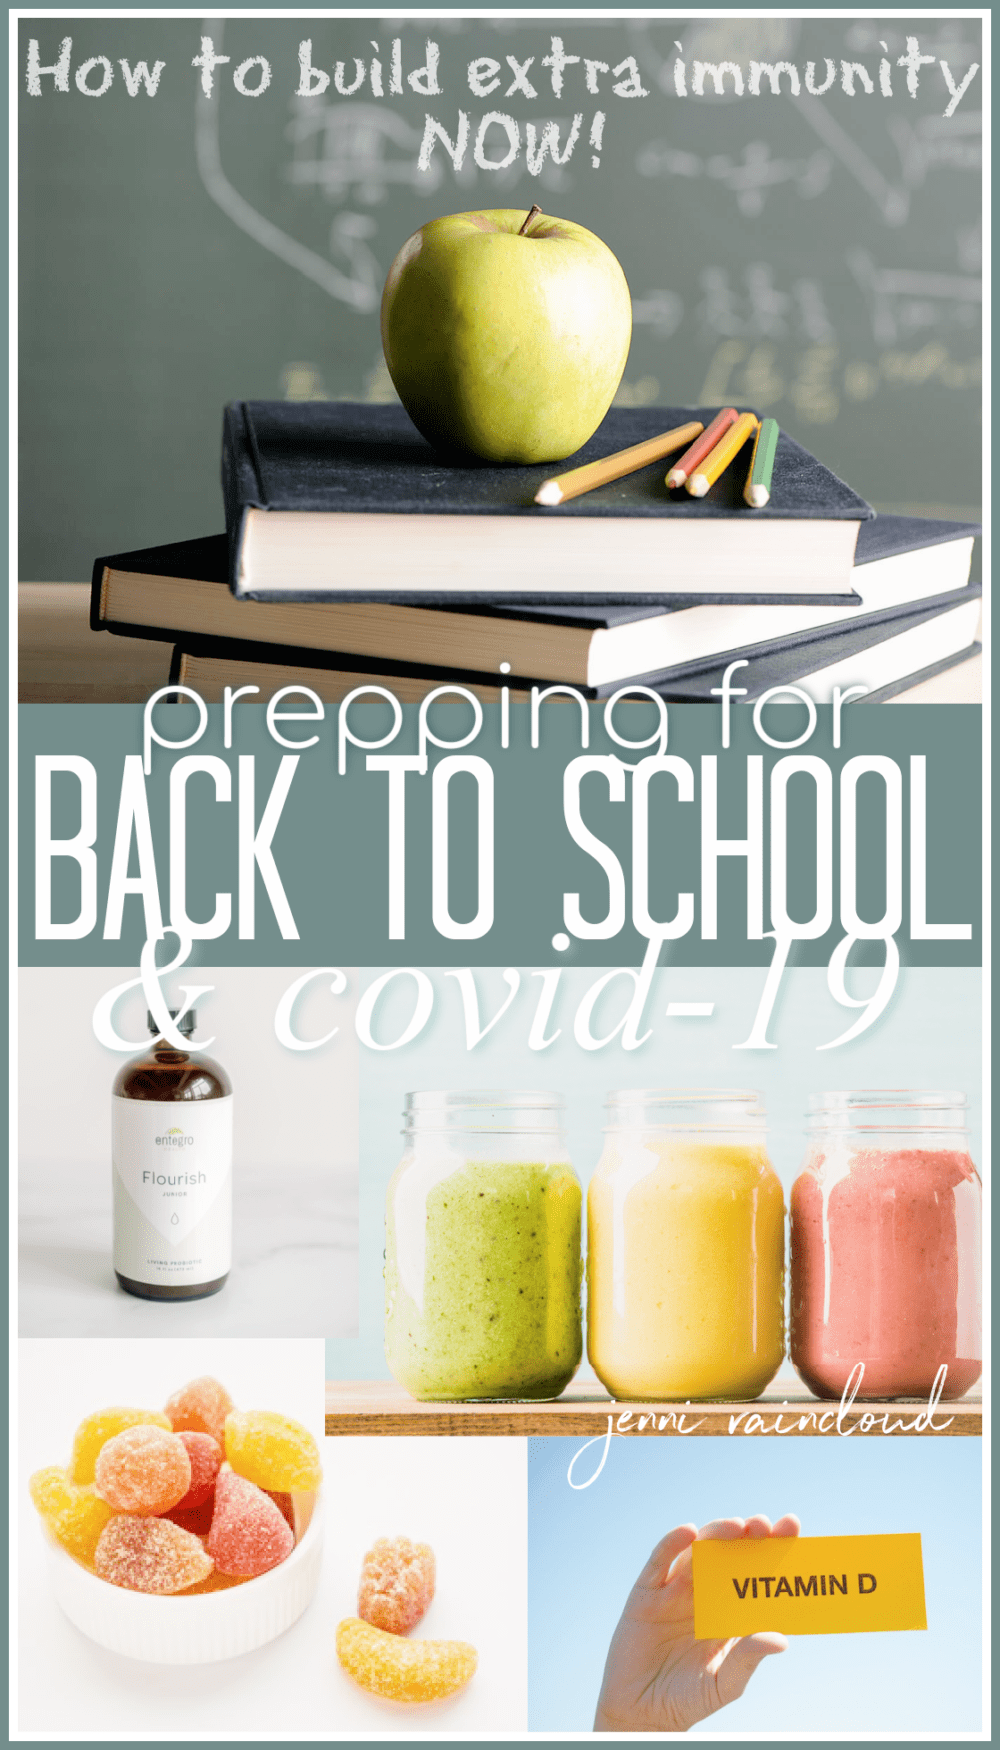 Back to School and Covid 19